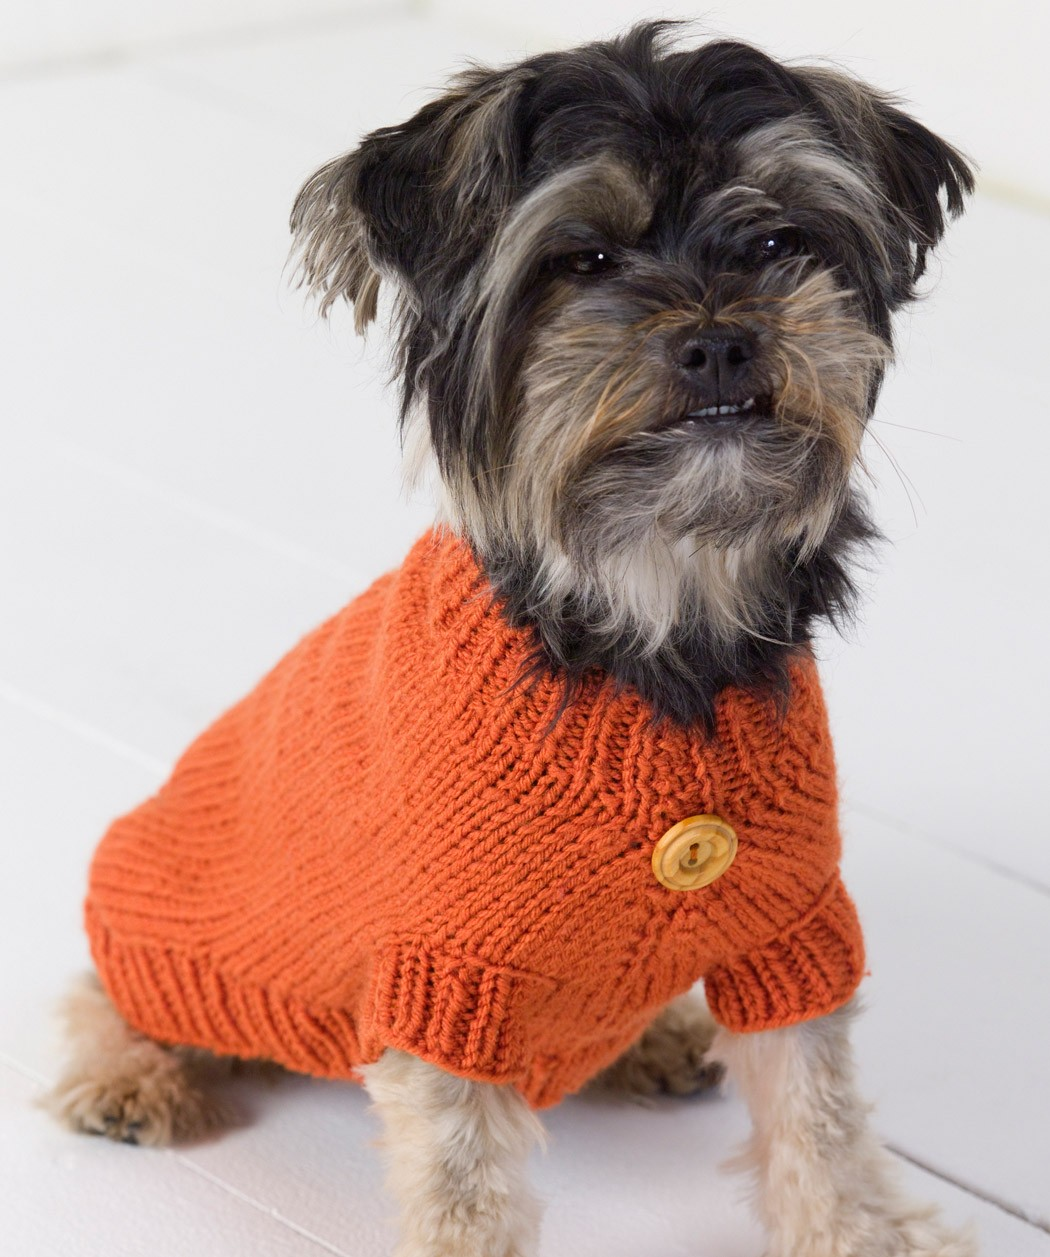 Dog sweaters help keep the chill away on cold-weather walks. Add an extra layer to your dog and chase those chills away, with our large selection of stylish dog sweaters.